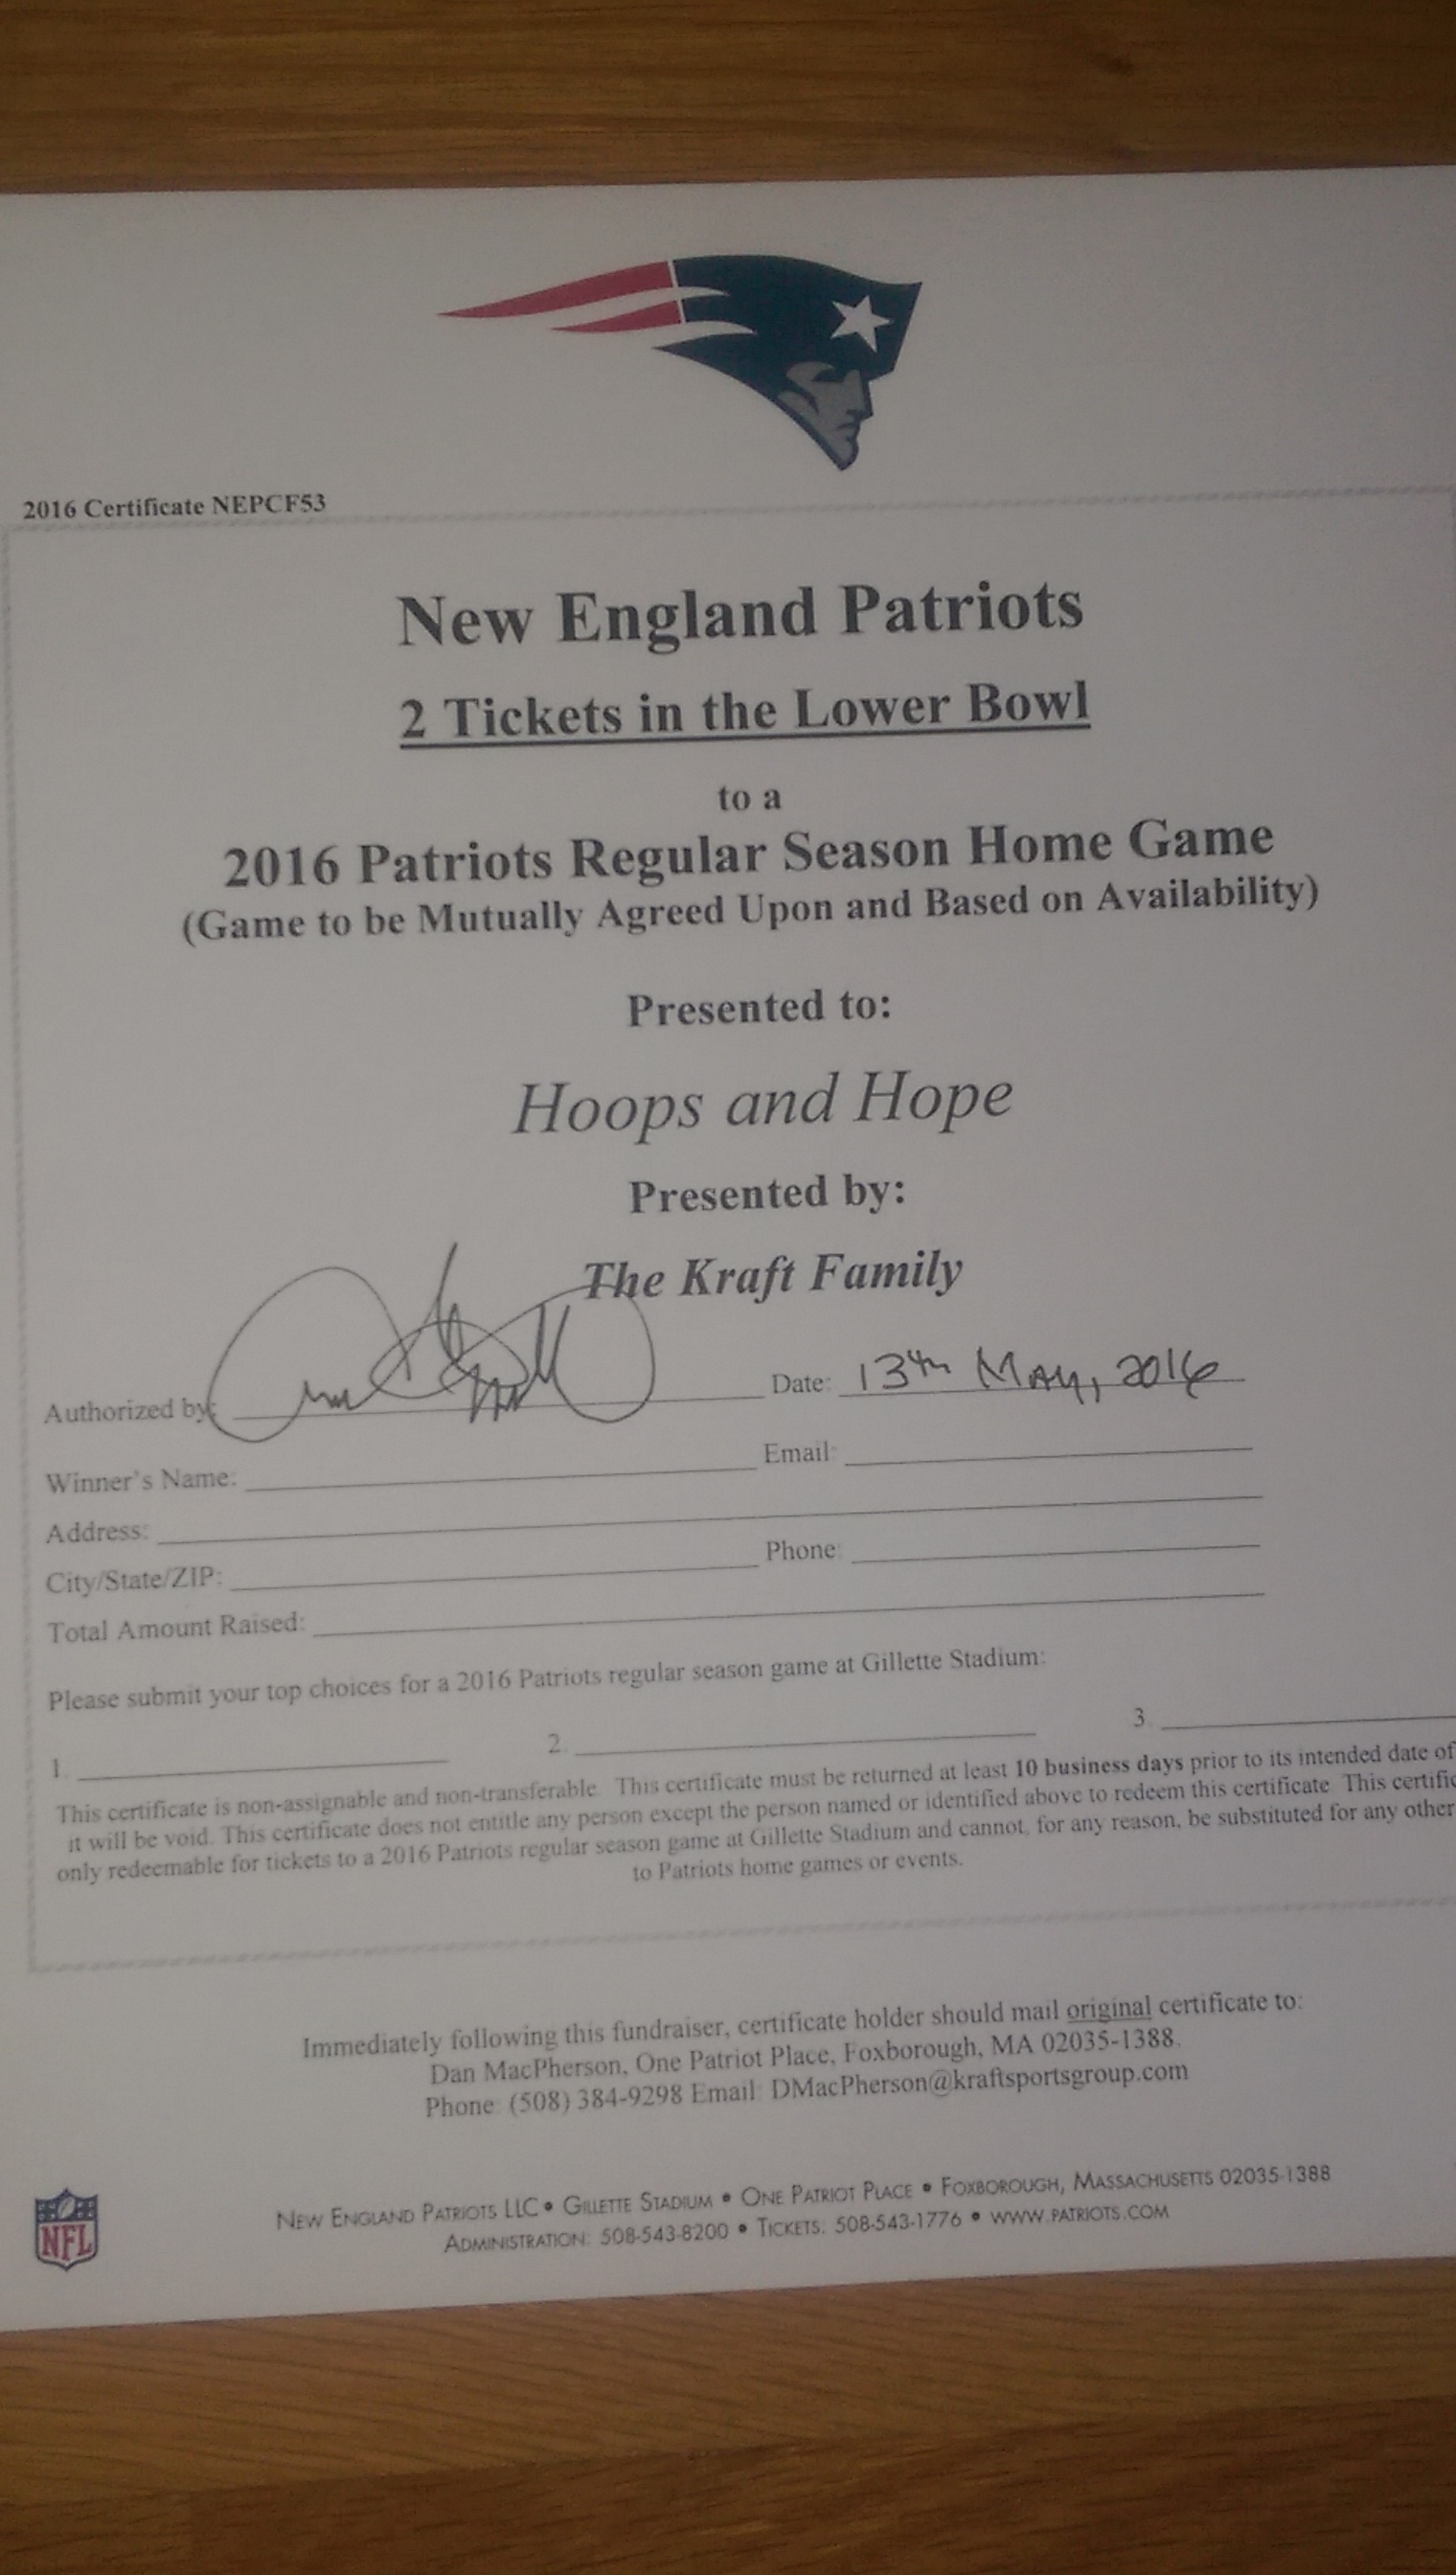 2017-2018 New England Patriots Ticket Package